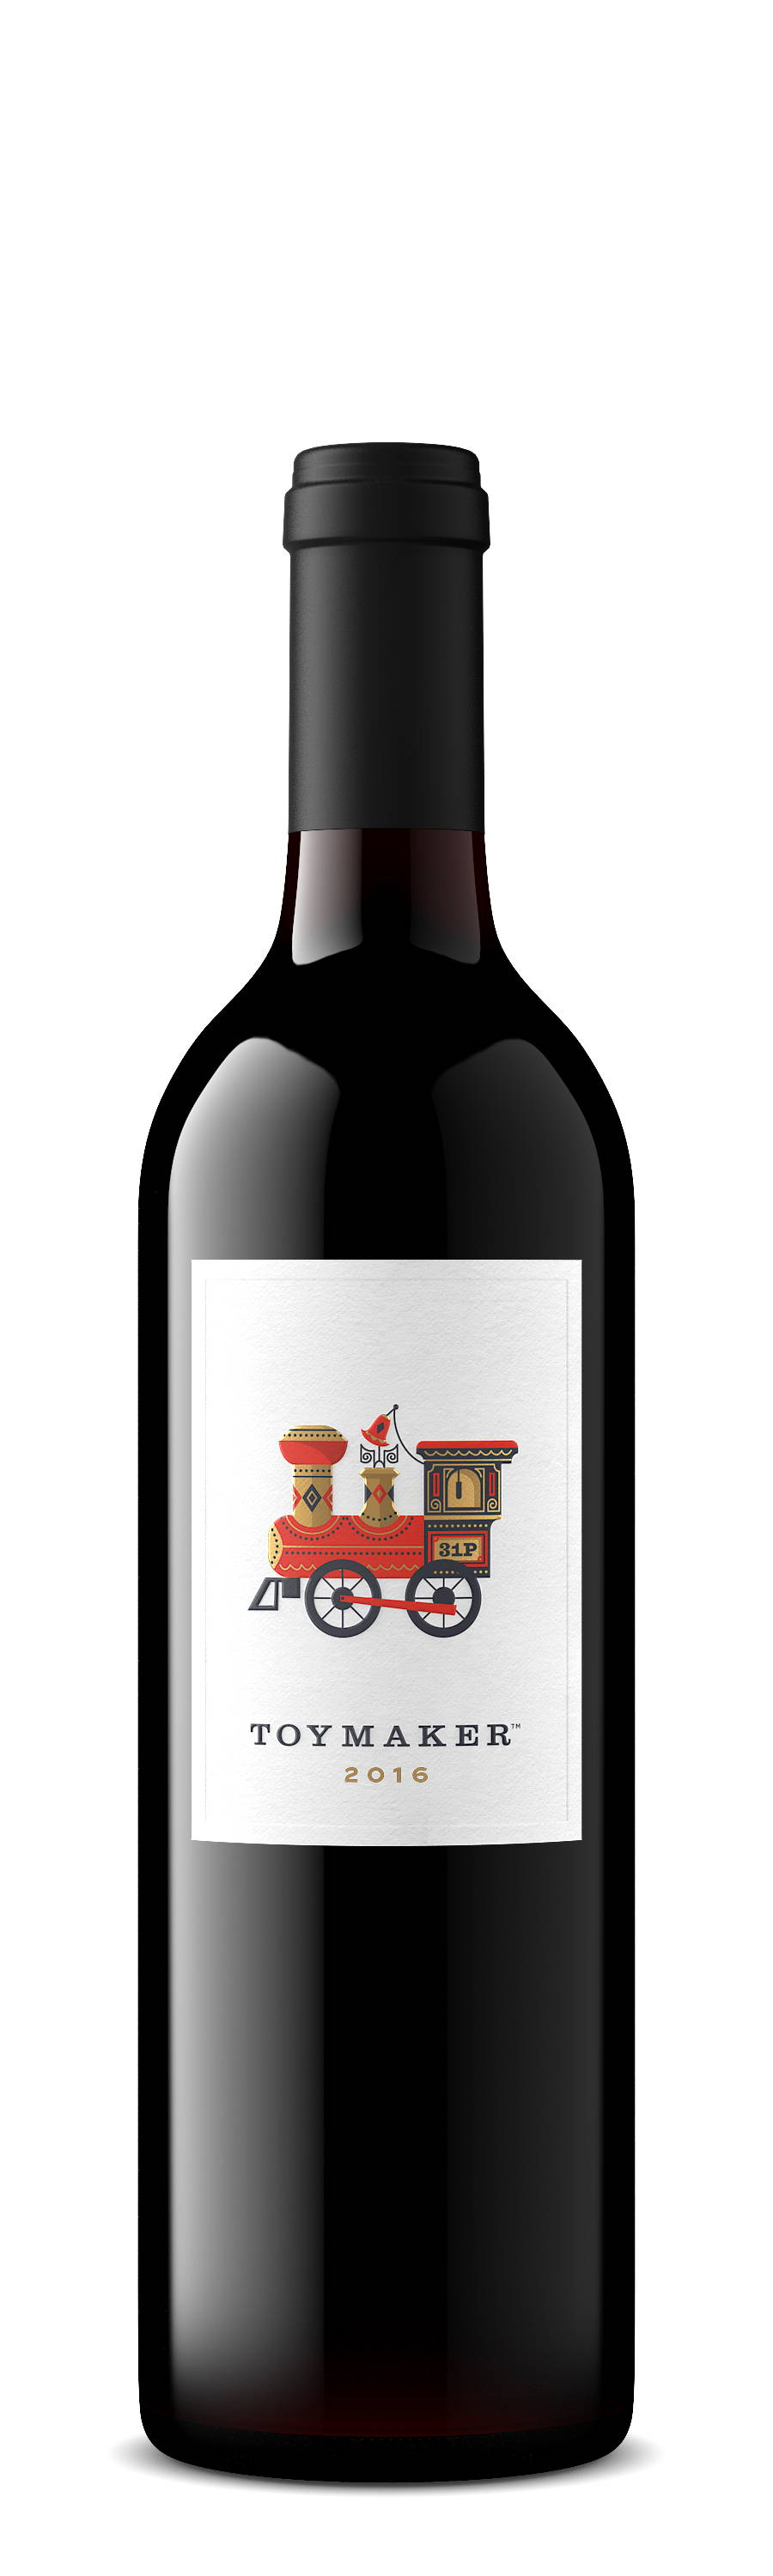 2015 ToyMaker Cellars Cabernet Sauvignon, Red Wine, Napa Valley, California, made by winemaker Martha McClellan of Sloan Estate, Checkerboard Vineyards, Levy & McClellan, and formerly of Harlan Estate. Best Napa Valley Grand Cru red wines.